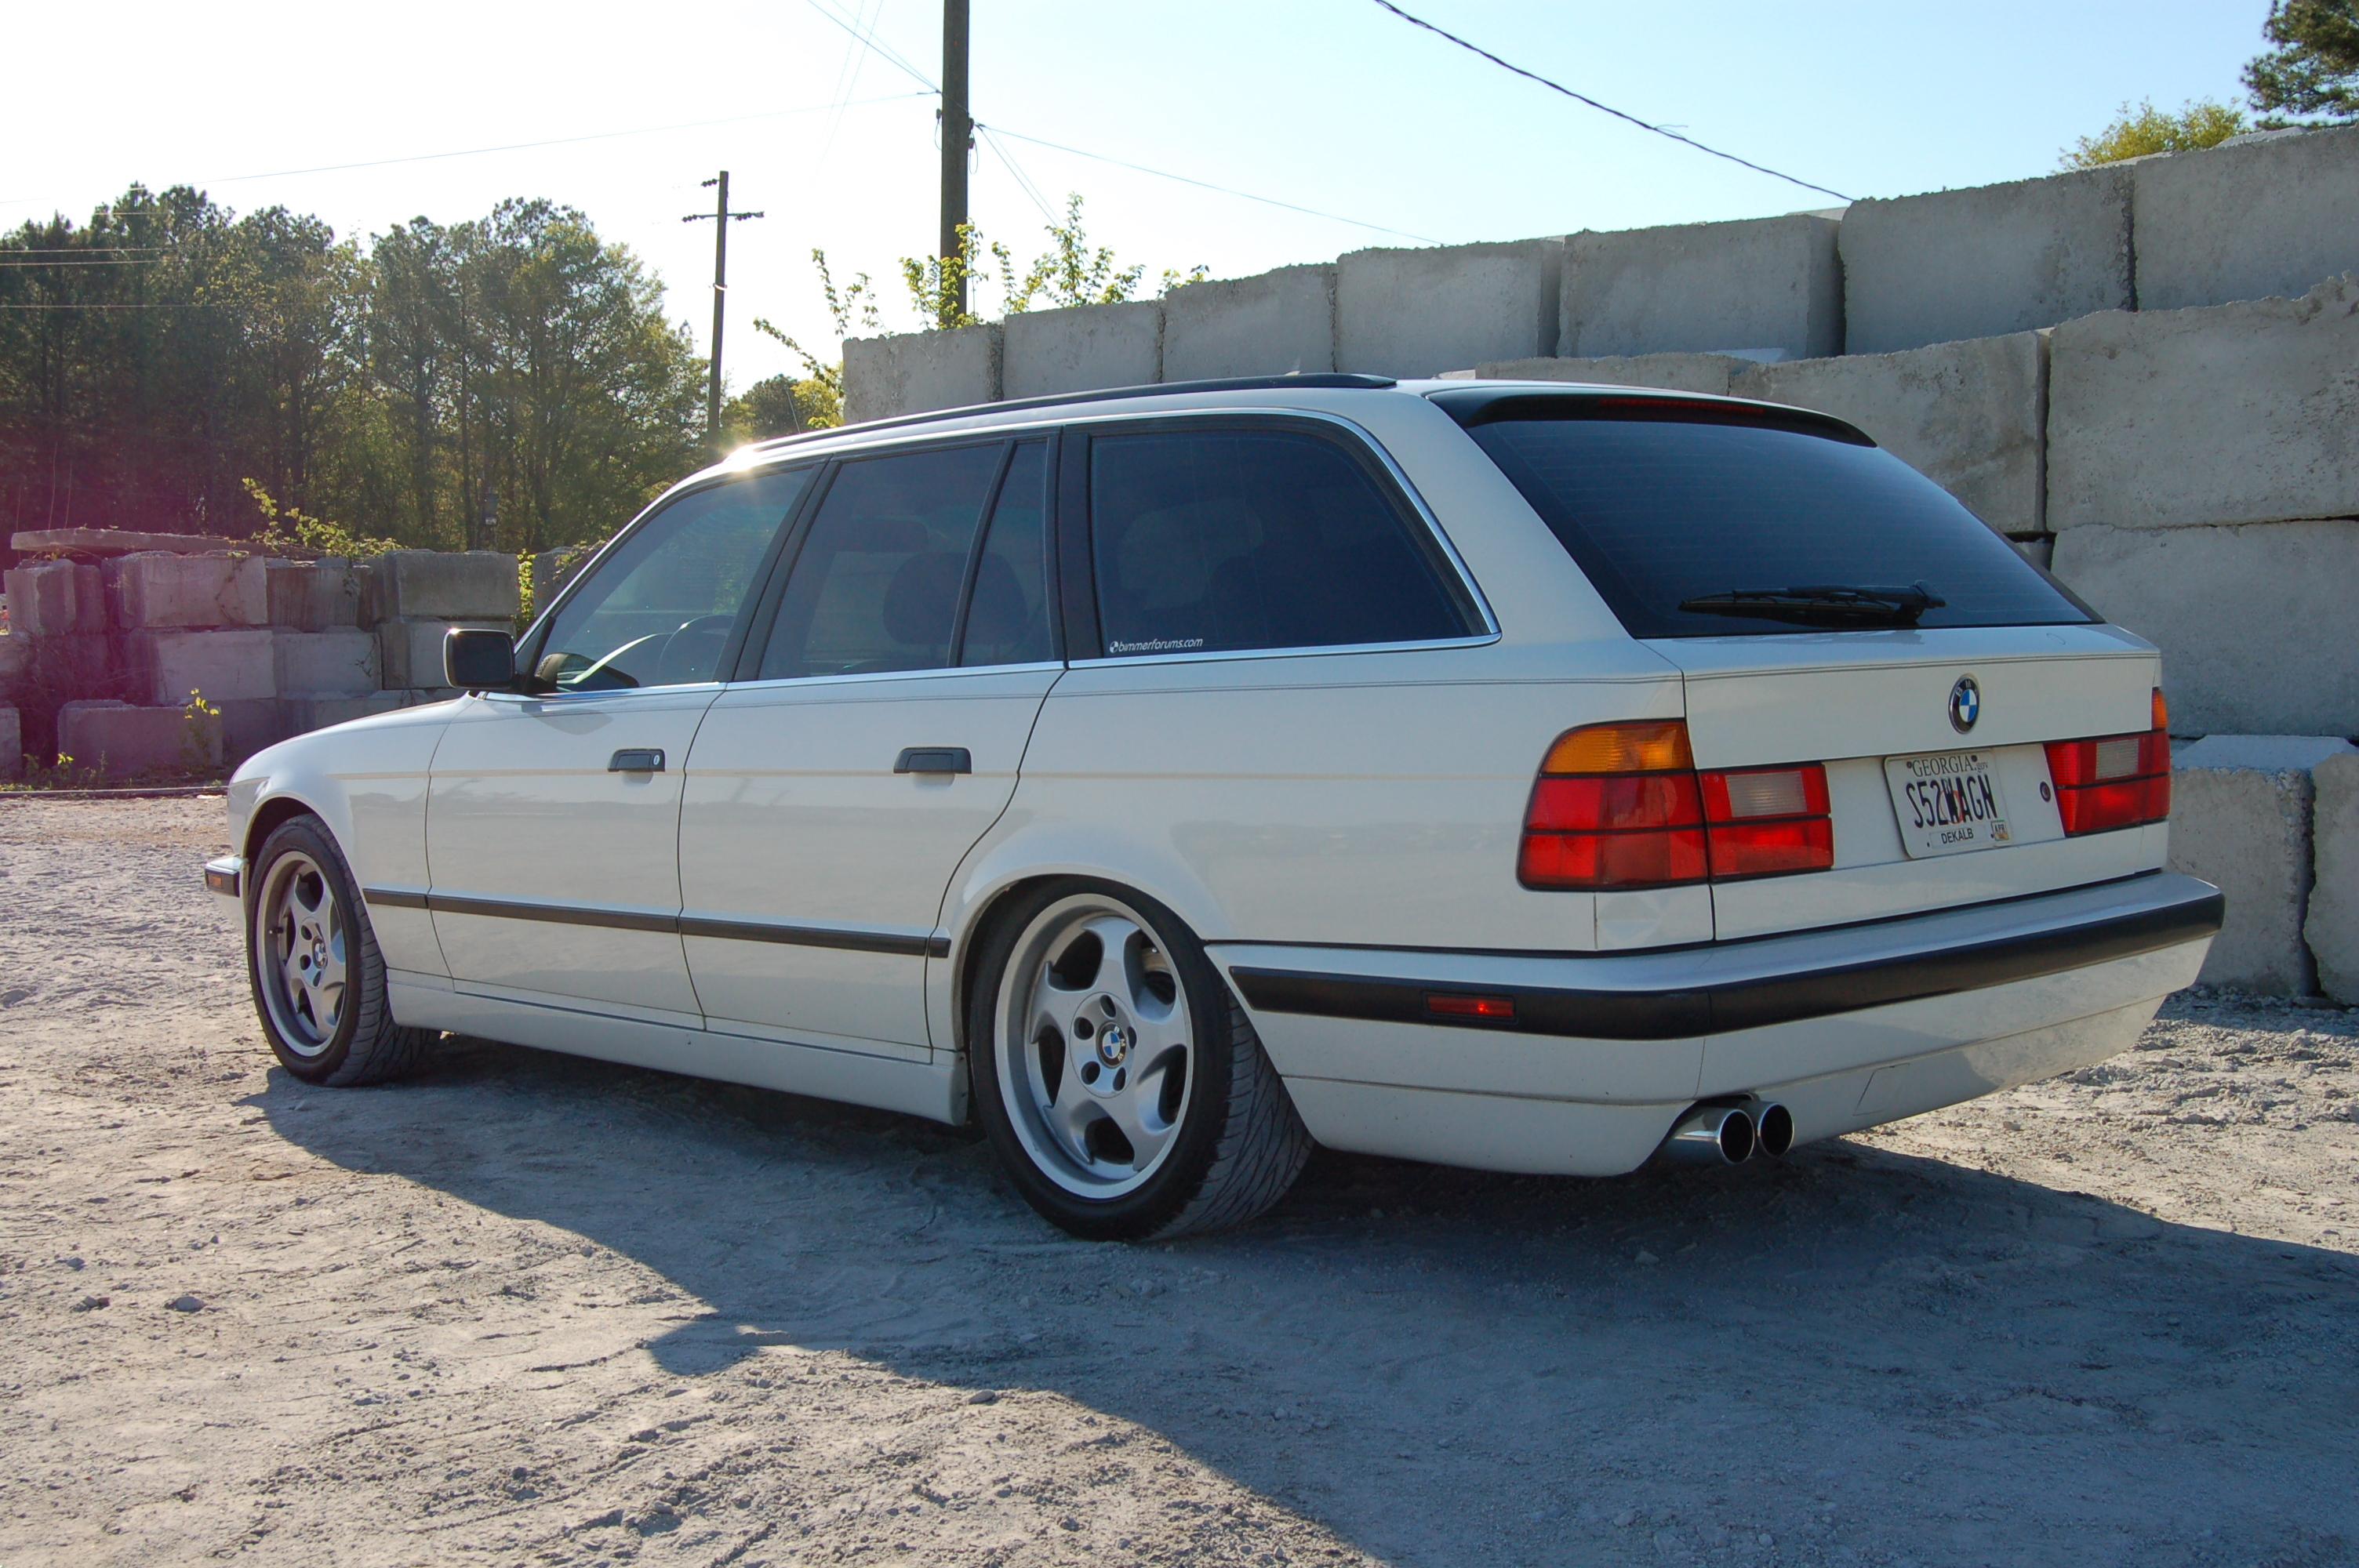 shrike071's 1993 BMW 5 Series